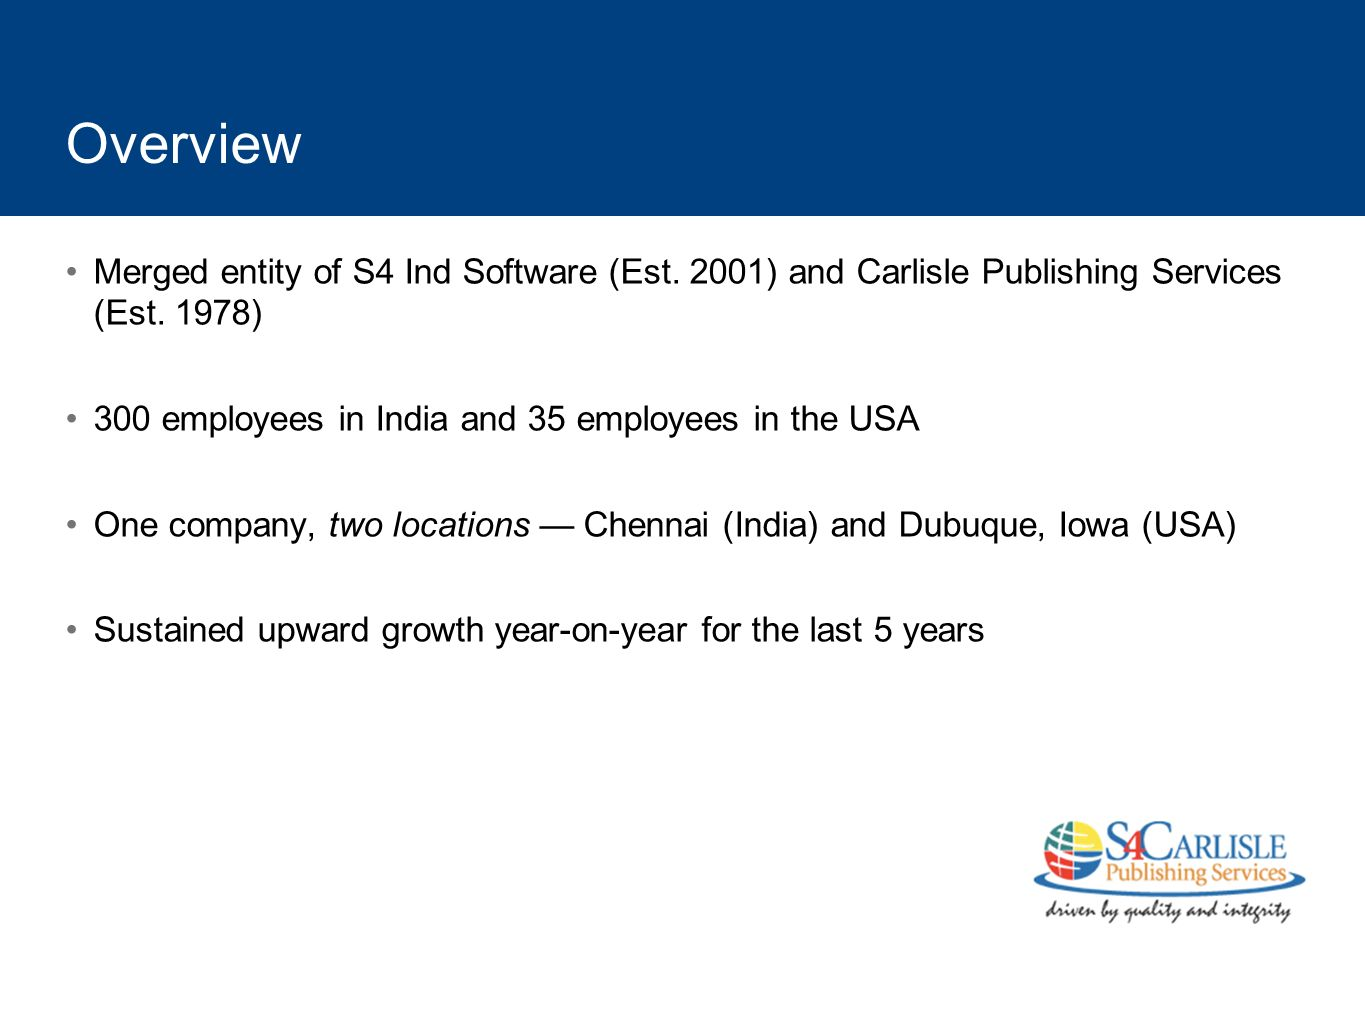 Overview Merged entity of S4 Ind Software (Est. 2001) and Carlisle Publishing Services (Est. 1978)